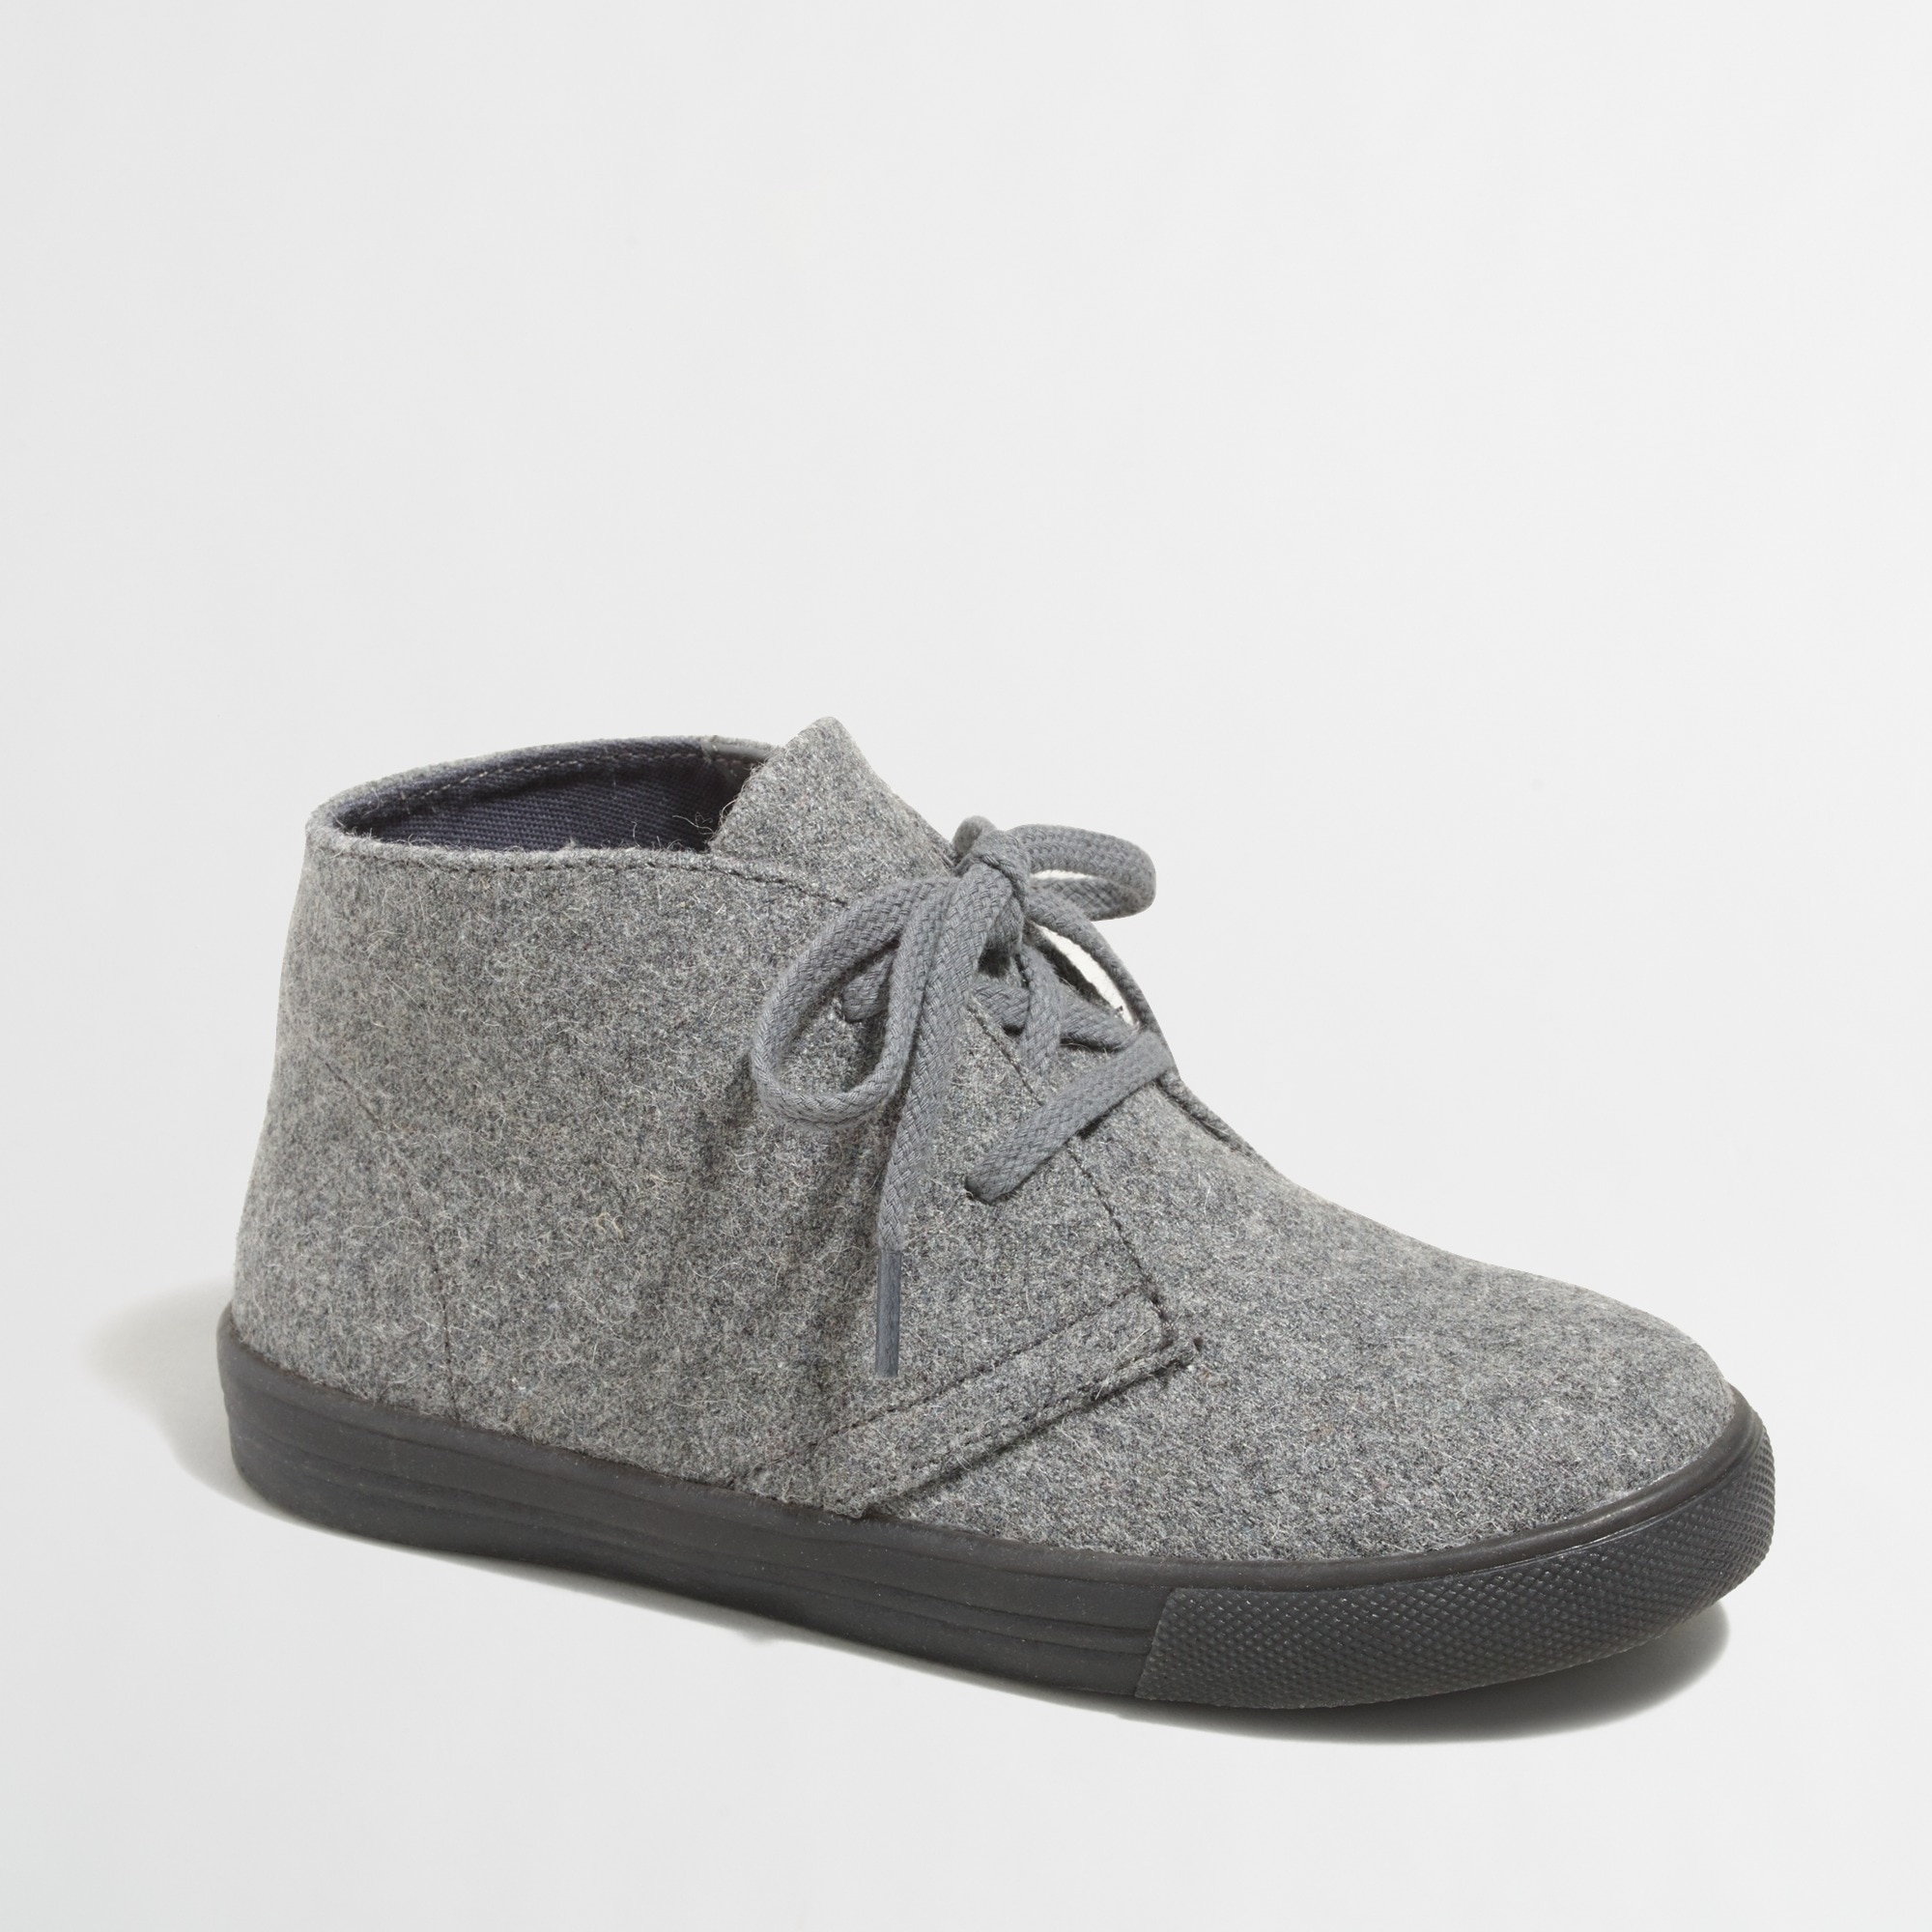 Image 1 for Boys' wool Calvert sneakers